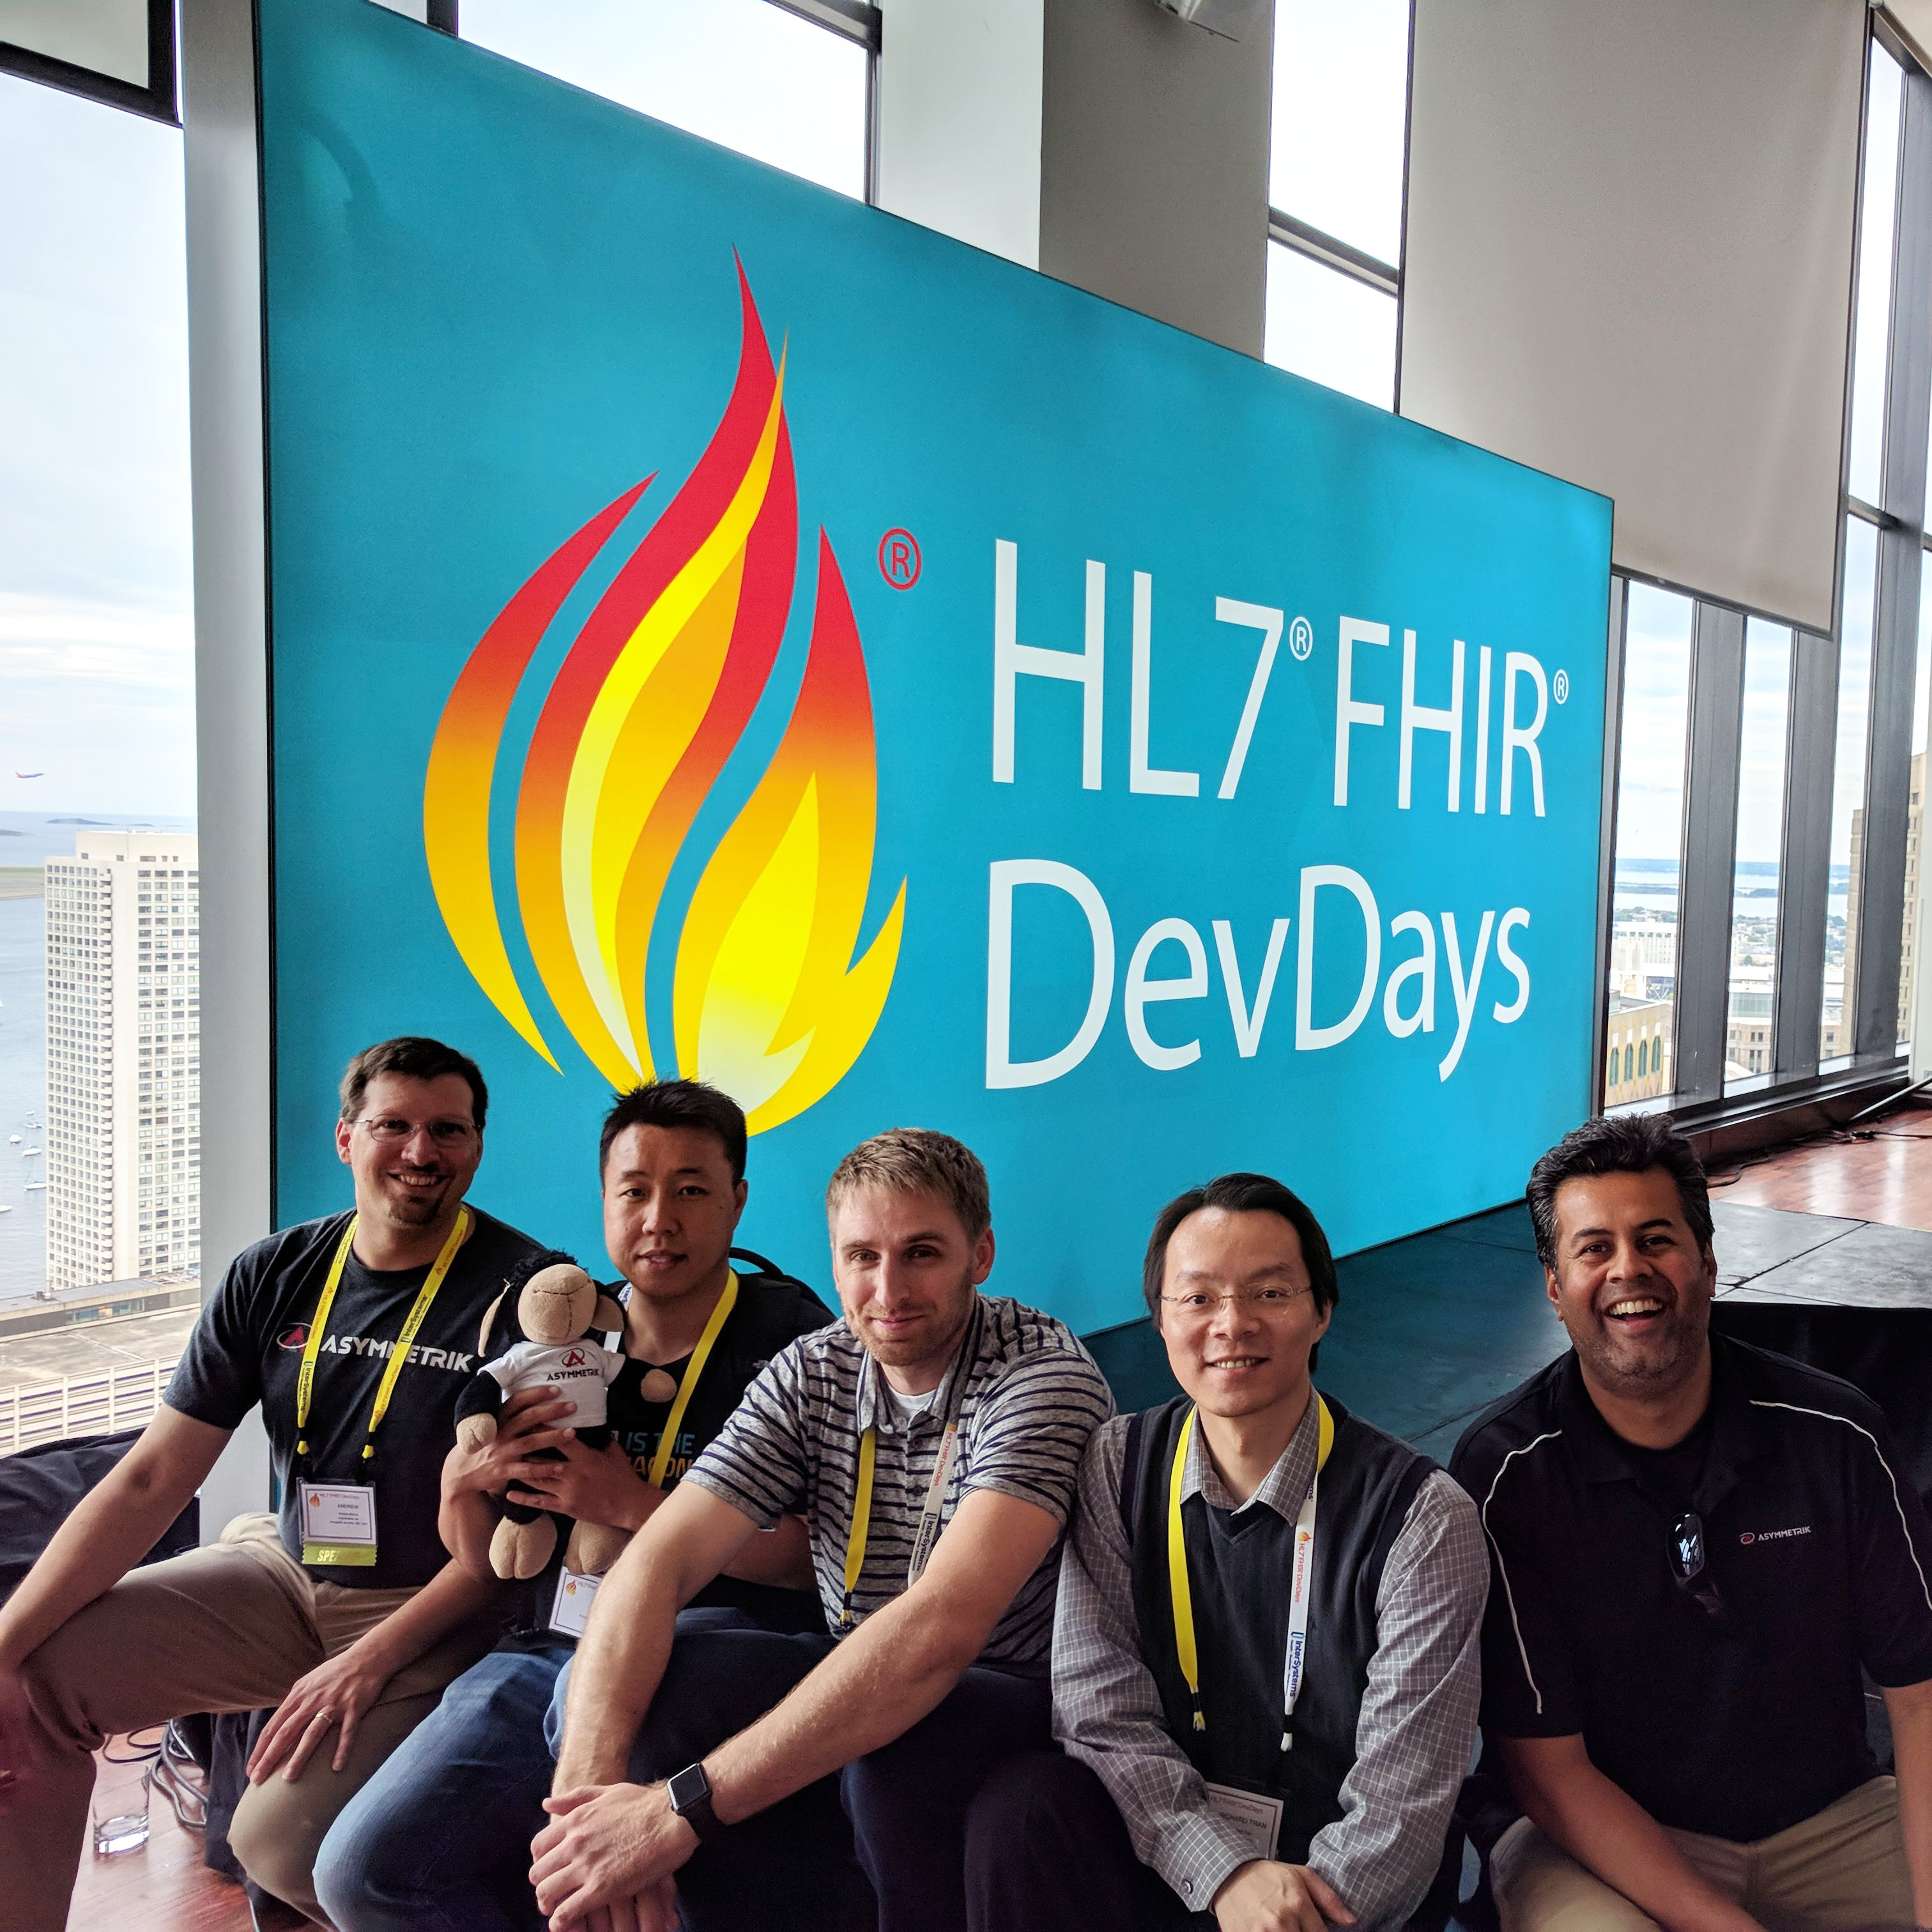 Asymmetrik team FHIR DevDays